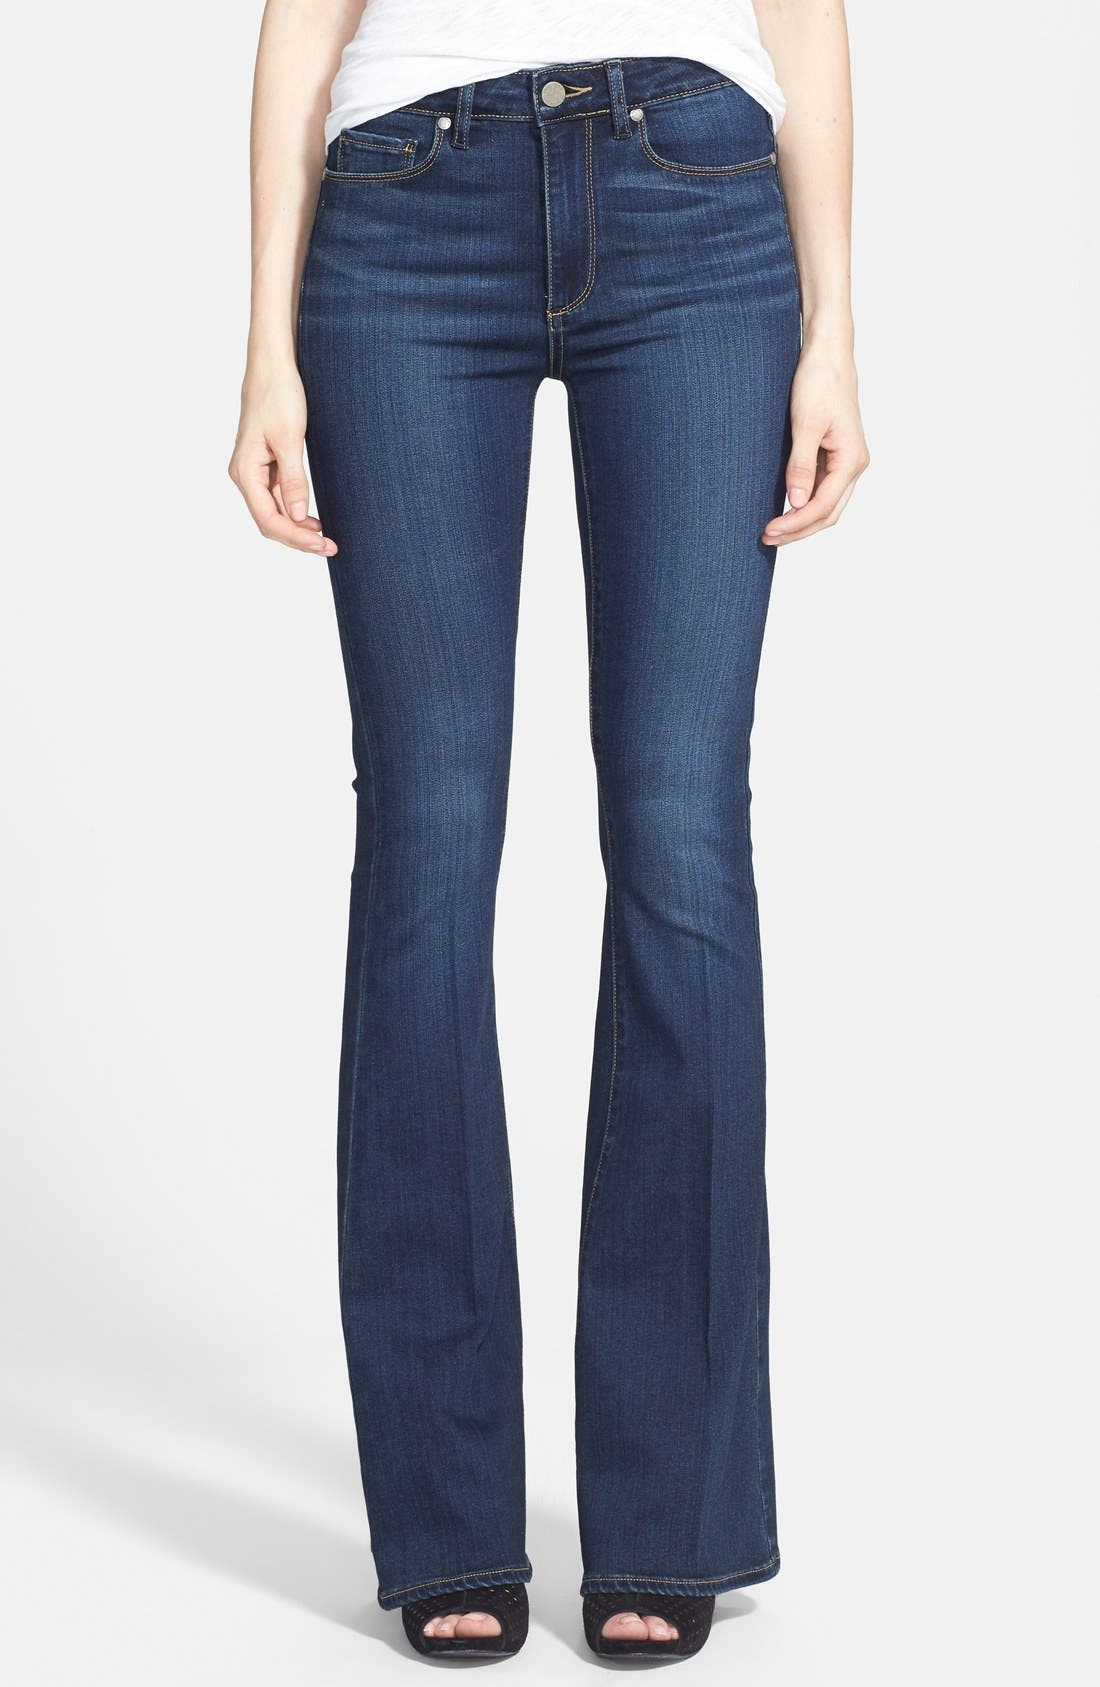 Alternate Image 1 Selected - PAIGE 'Transcend - Bell Canyon' High Rise Flare Jeans (Nottingham)